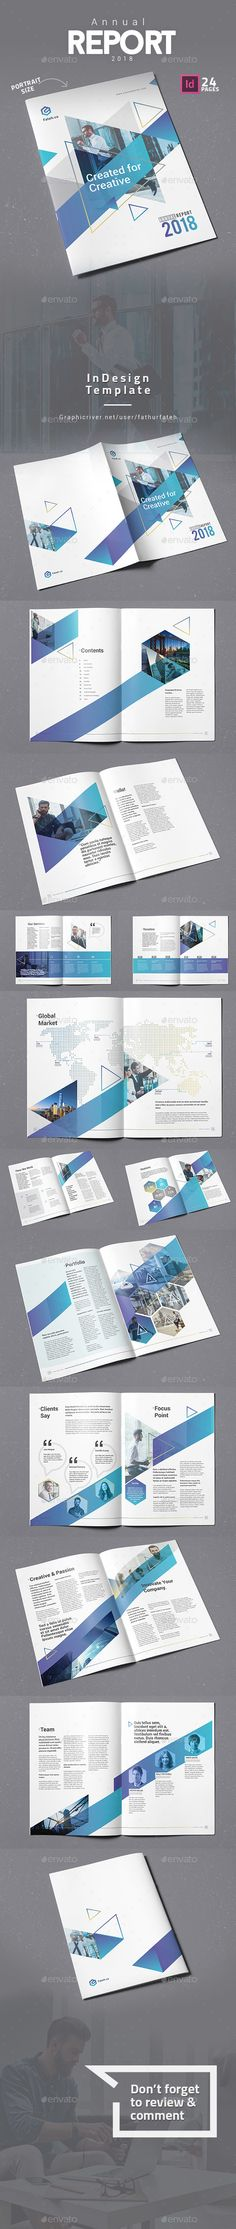 Annual Report 2018 template is a 24 pages Indesign brochure template available in A4 size.Print ready or export and send to clients as a pdf. Simply replace the logo and brand colors with your own. THIS PRODUCT INCLUDES24 pages Indesign Document A4 size Compatible with Adobe Indesign CS4, CS5, CS5